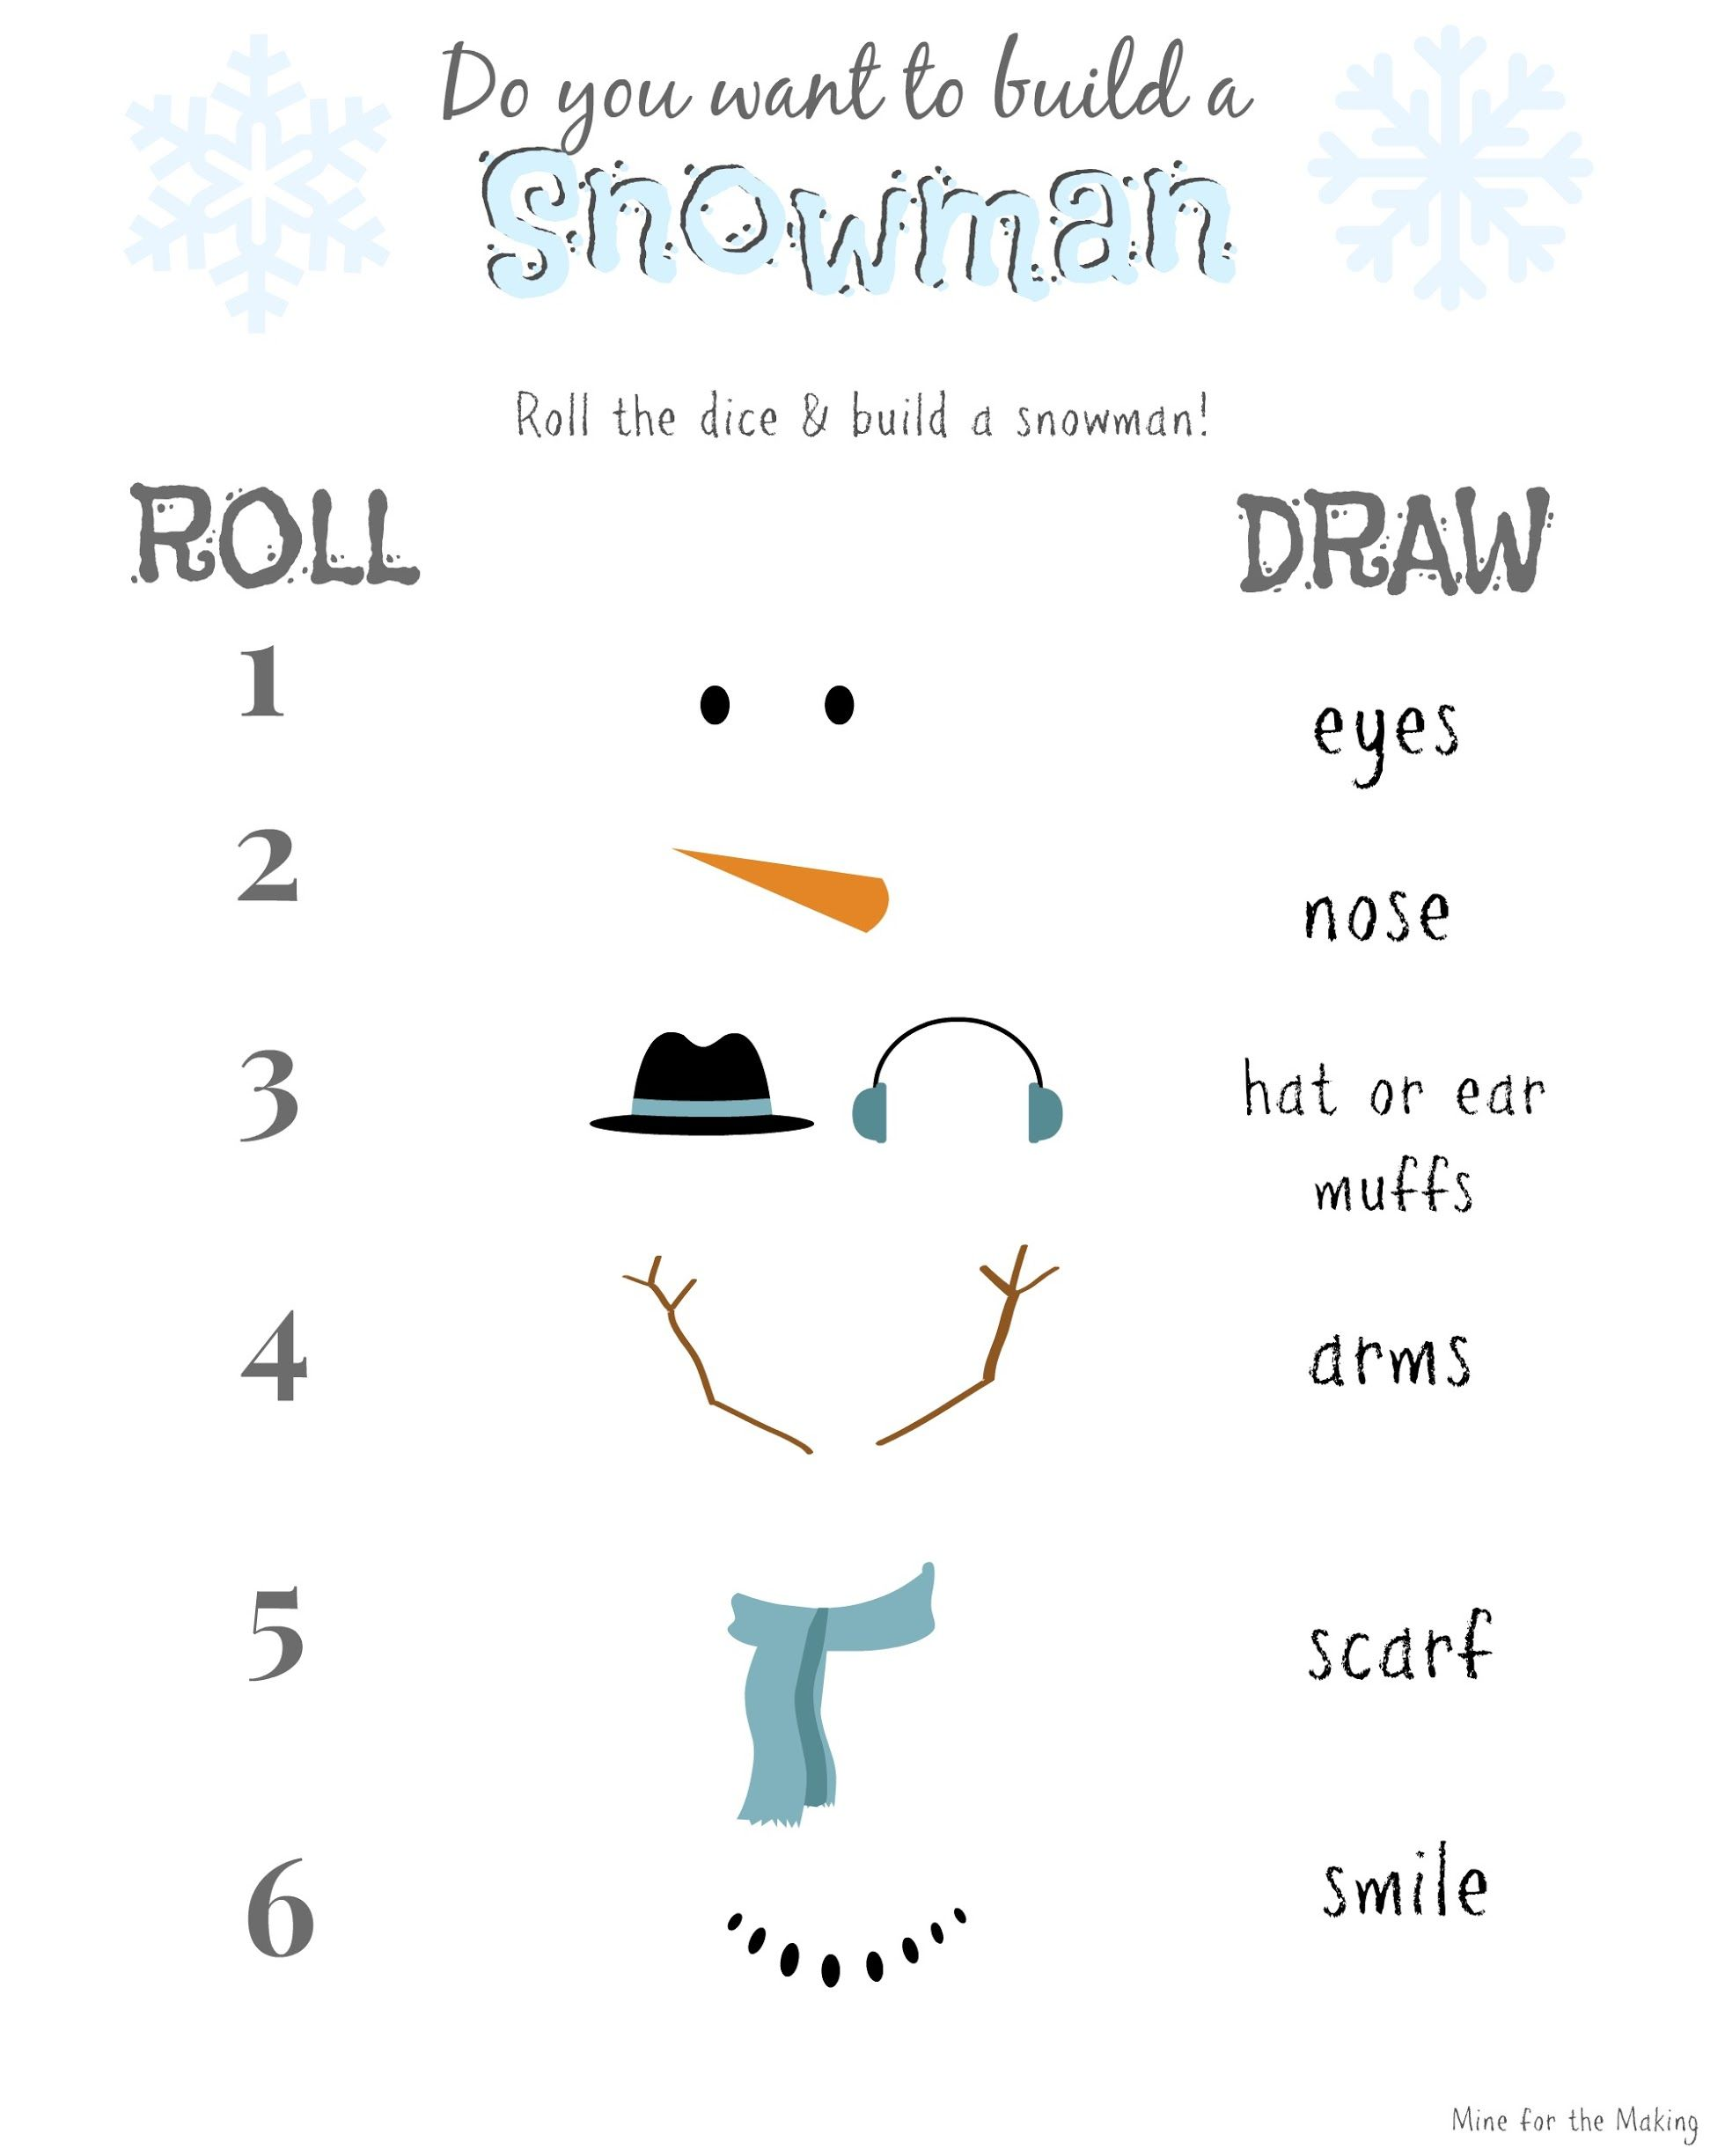 Displaying Build A Snowman 1